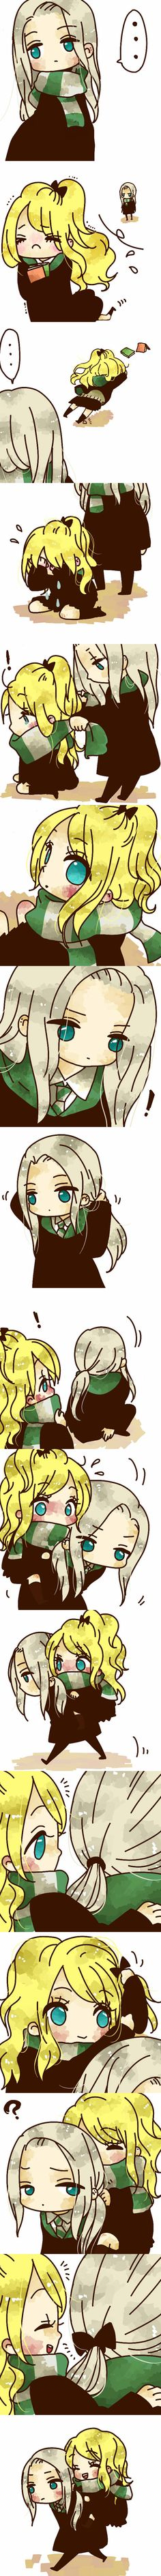 Lucius and Narcissa I have to admit it's pretty cute.... I NOW SHIP IT!!!!!!!